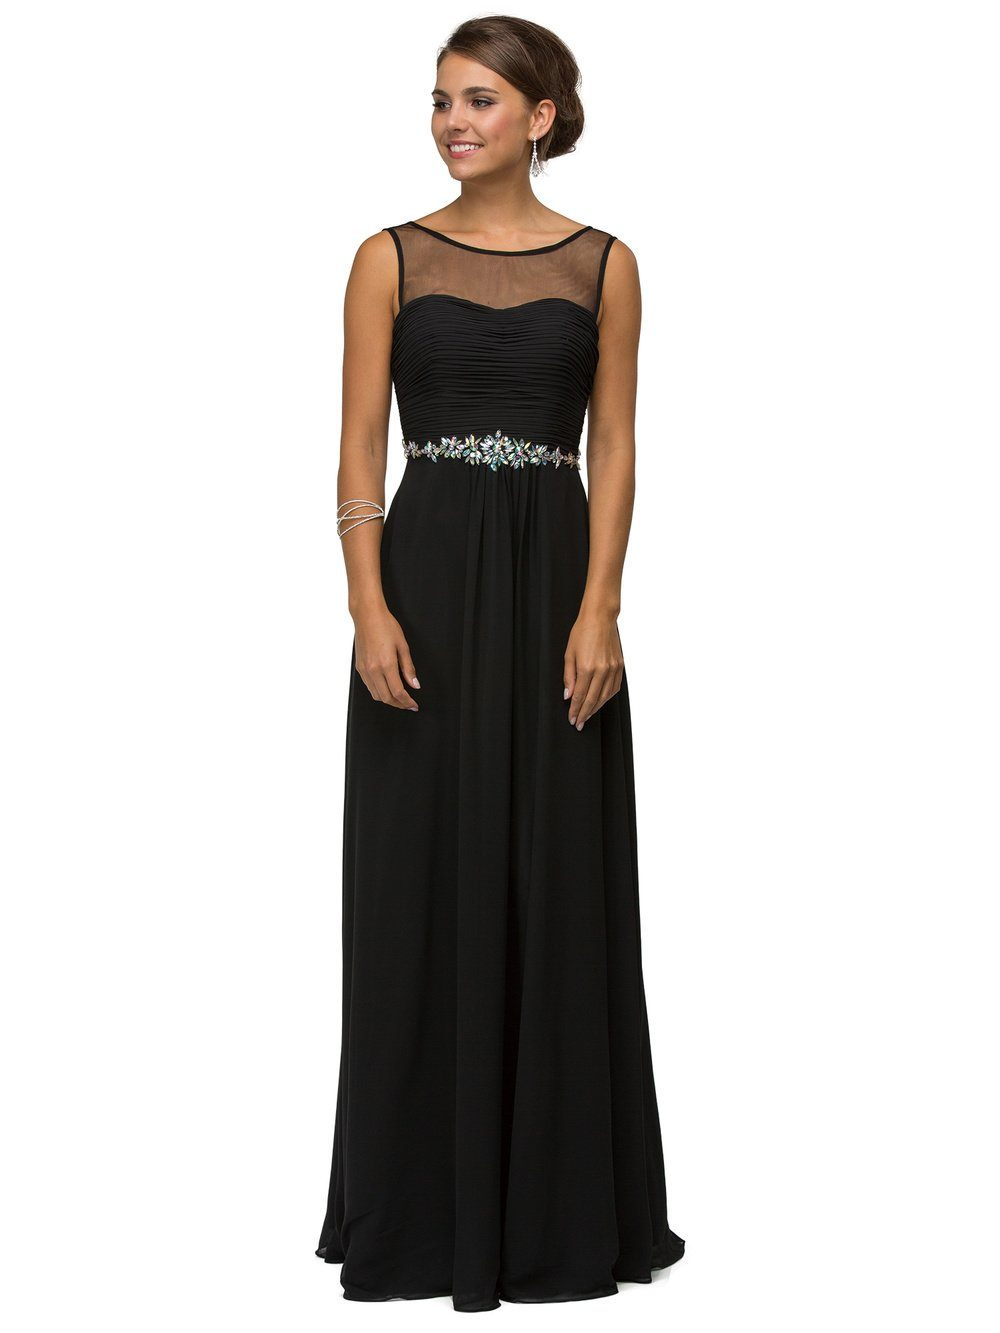 Affordable long evening gown DQ9541